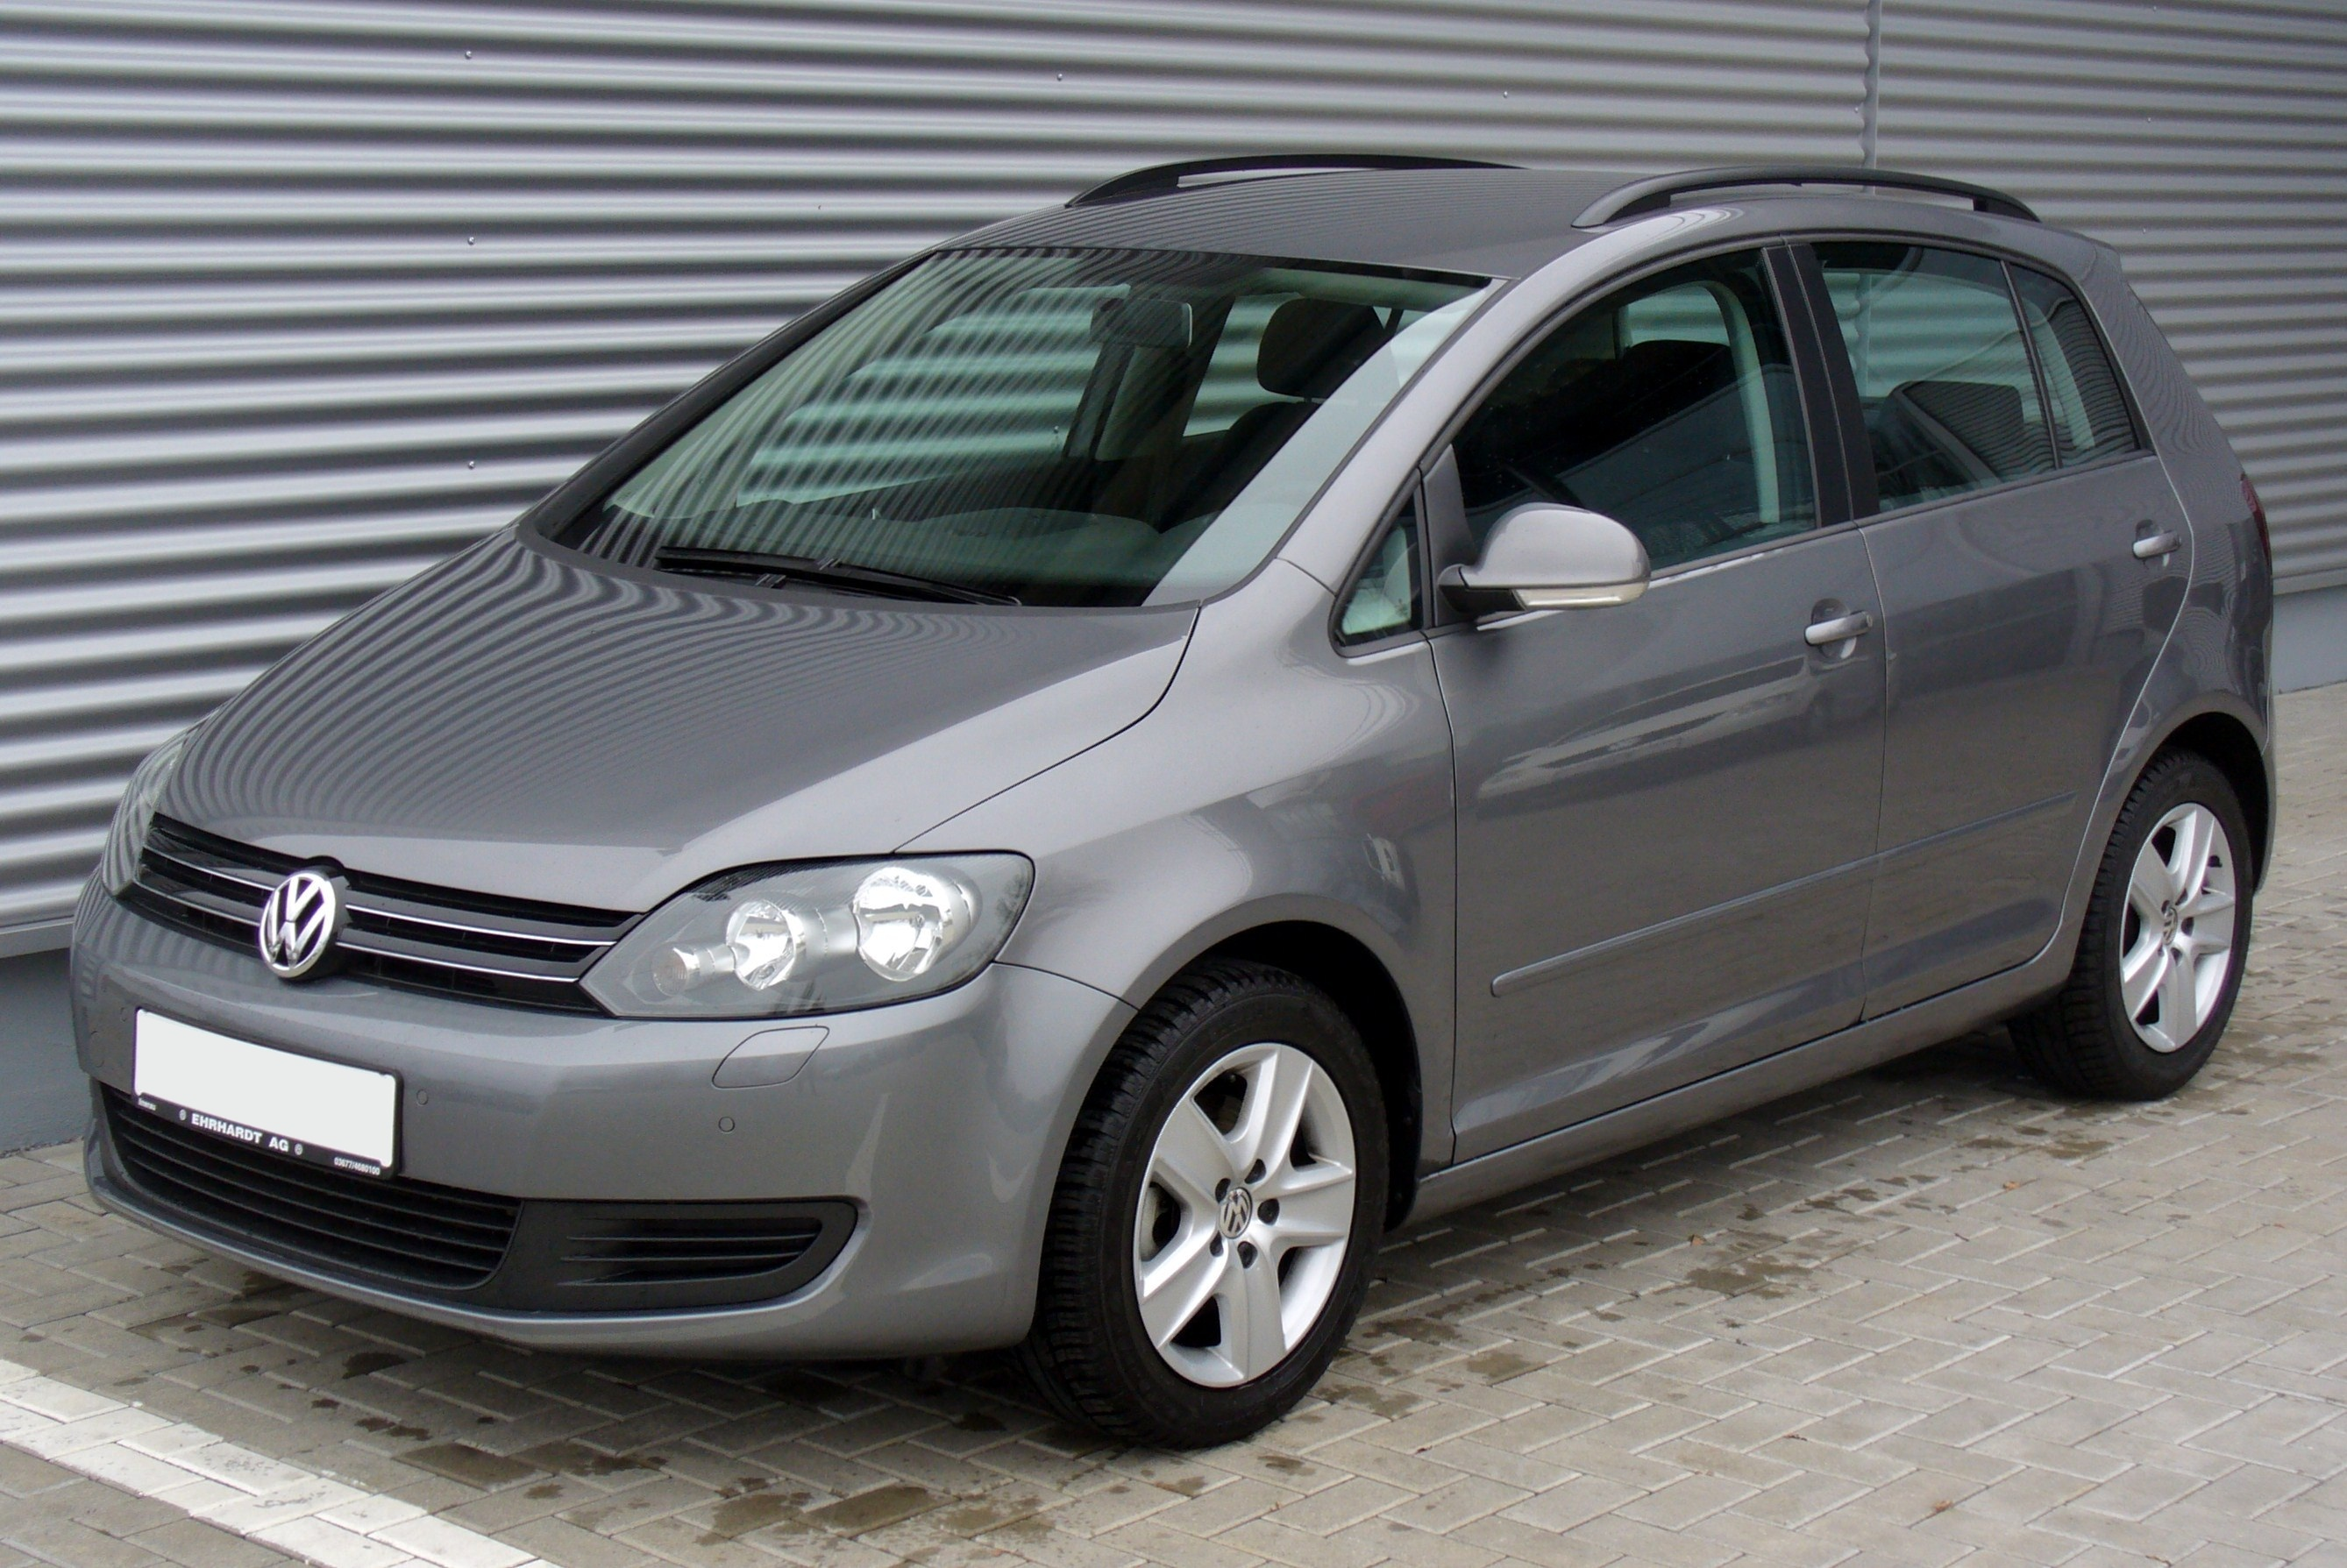 file vw golf vi plus 1 6 tdi comfortline united grey jpg wikimedia commons. Black Bedroom Furniture Sets. Home Design Ideas